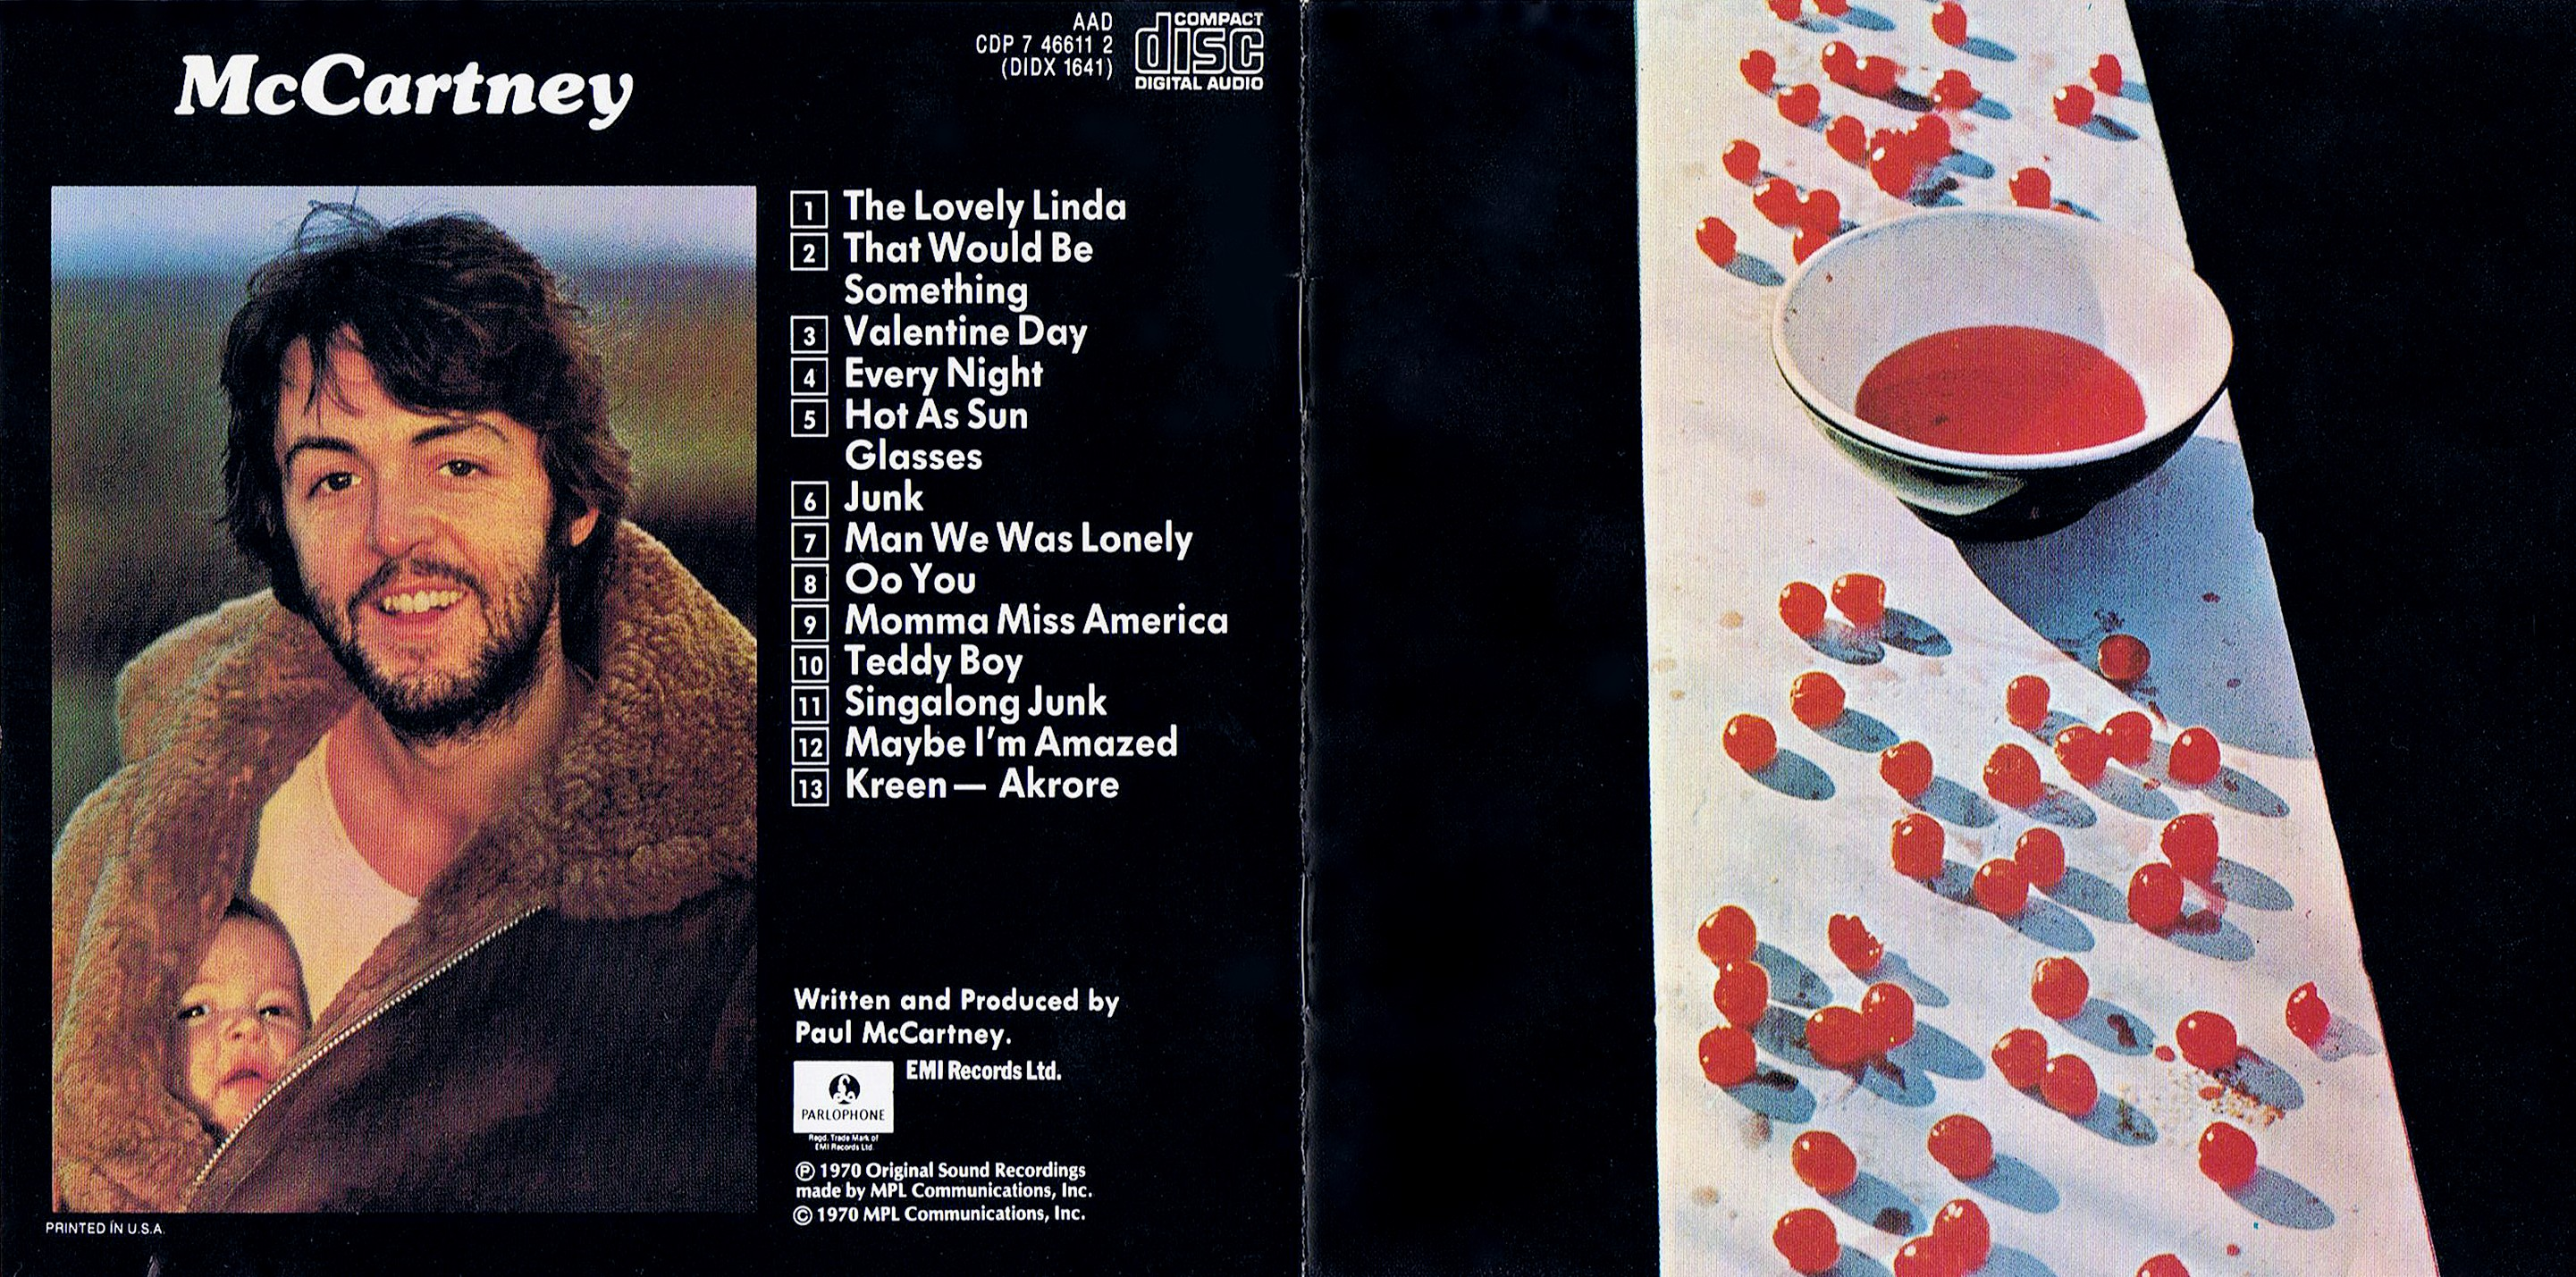 paul_mccartney_-_mccartney_-_booklet_(1-4)